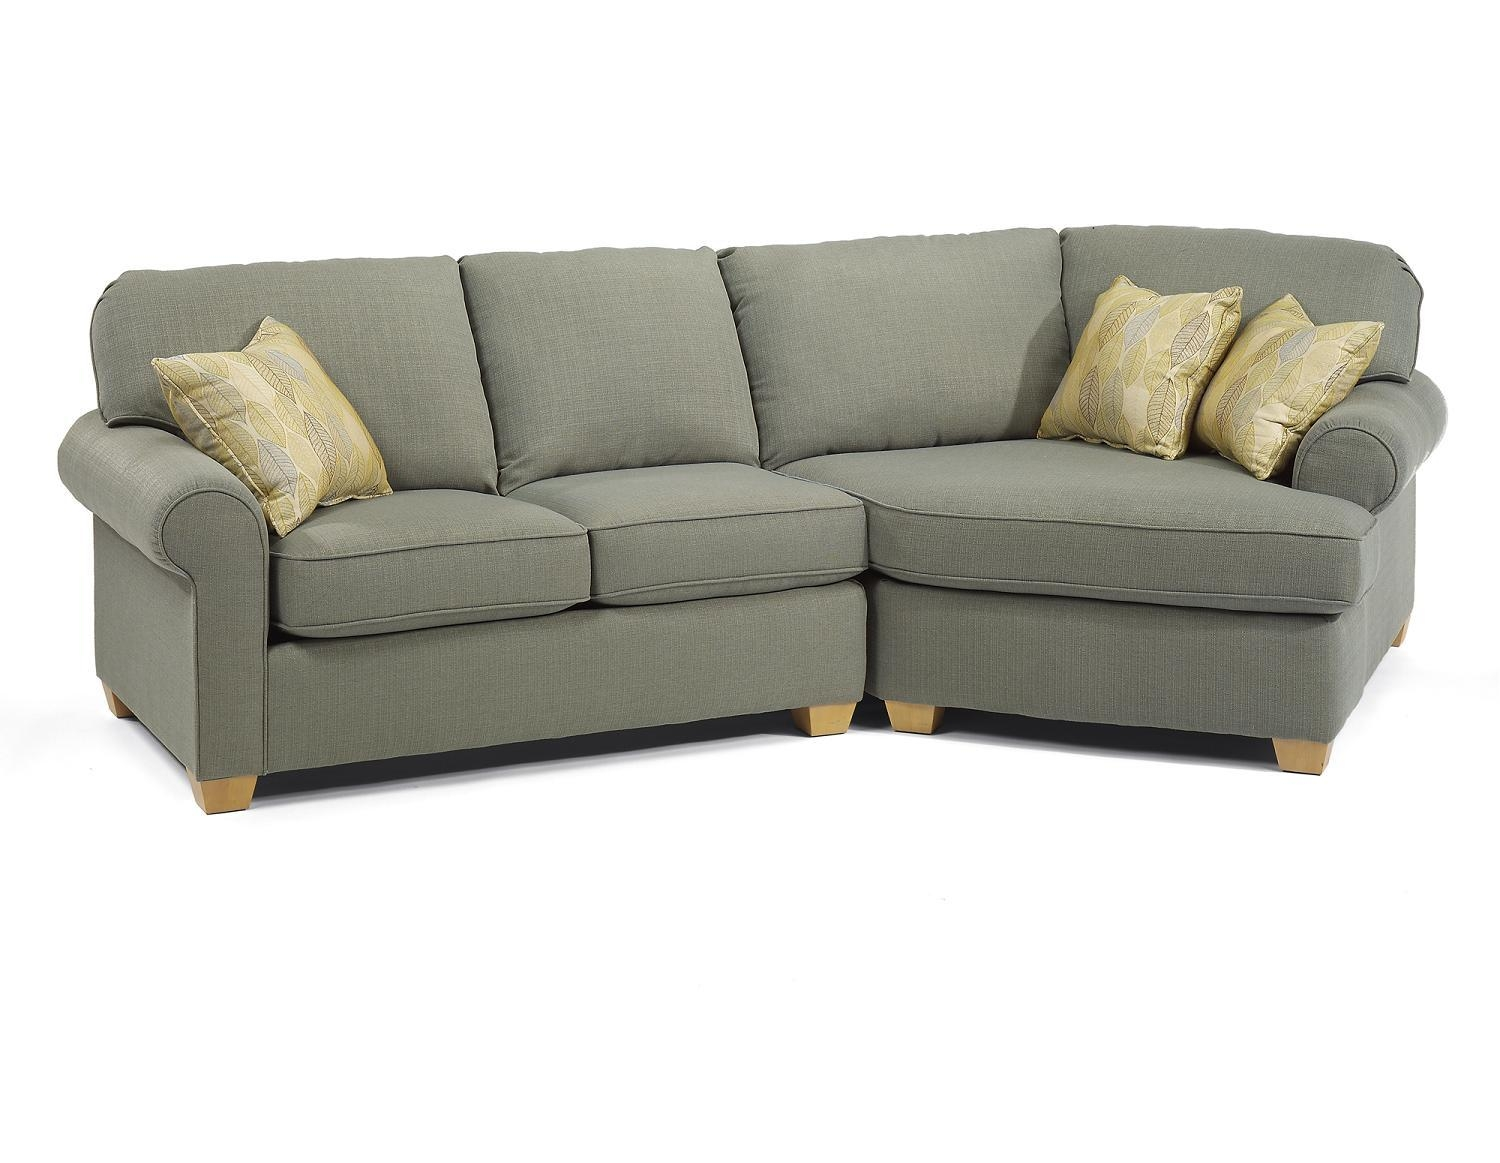 Sofa With Chaise Lounge 20 Inspirations Small Sofas With Chaise Lounge Sofa Ideas